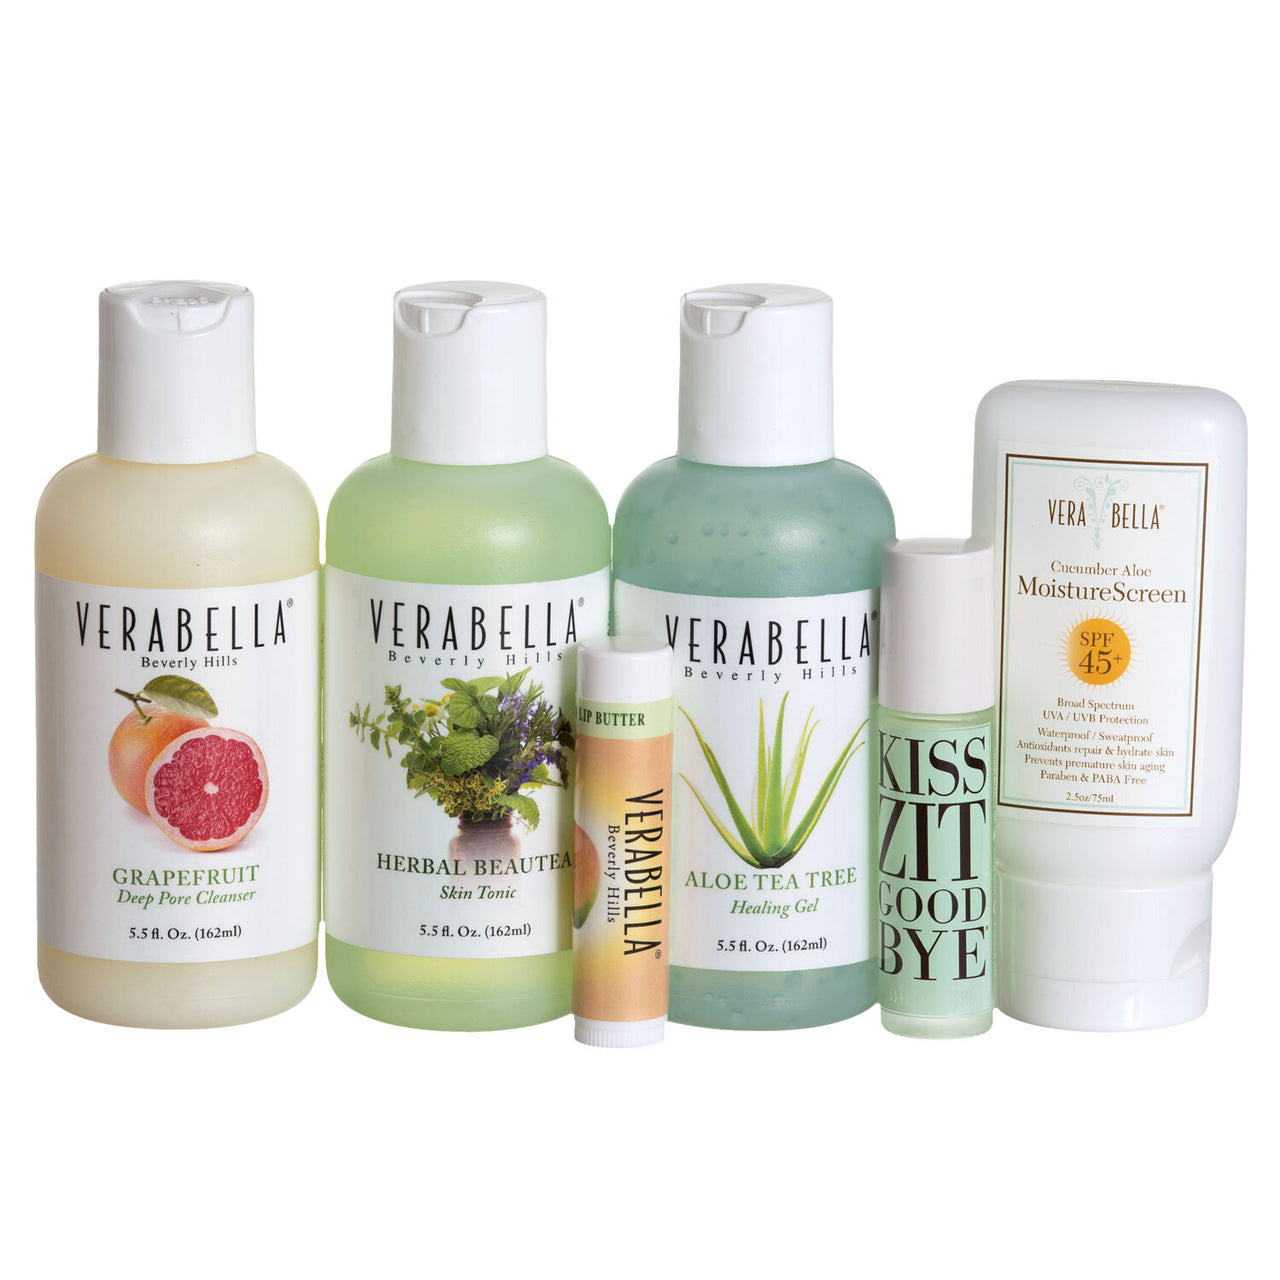 Verabella Face Essentials Kit - cleanser, tonic, moisturizer, SPF, and acne treatment